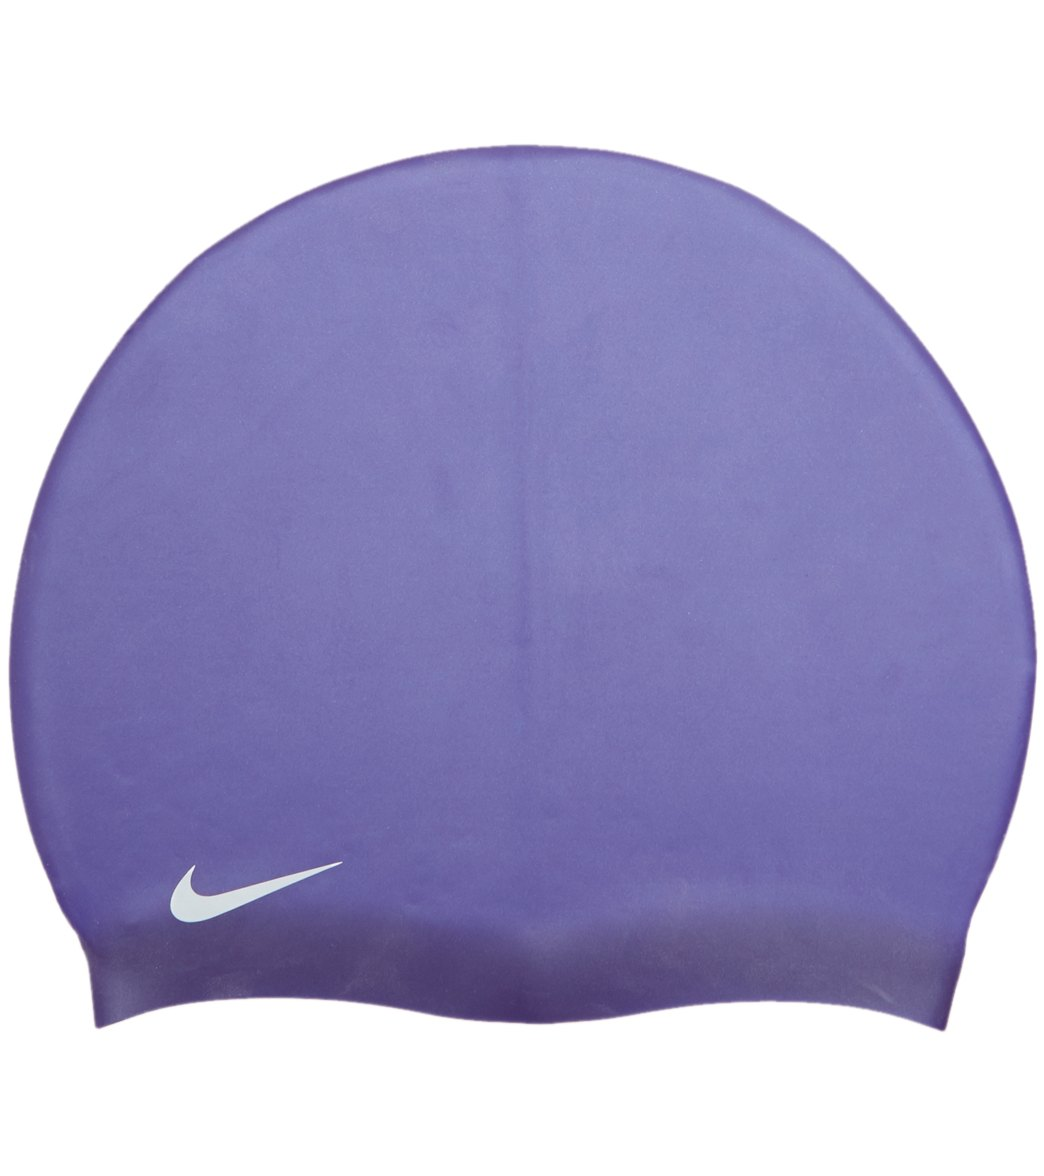 e2b003dbef7 Nike Swim Silicone Cap at SwimOutlet.com